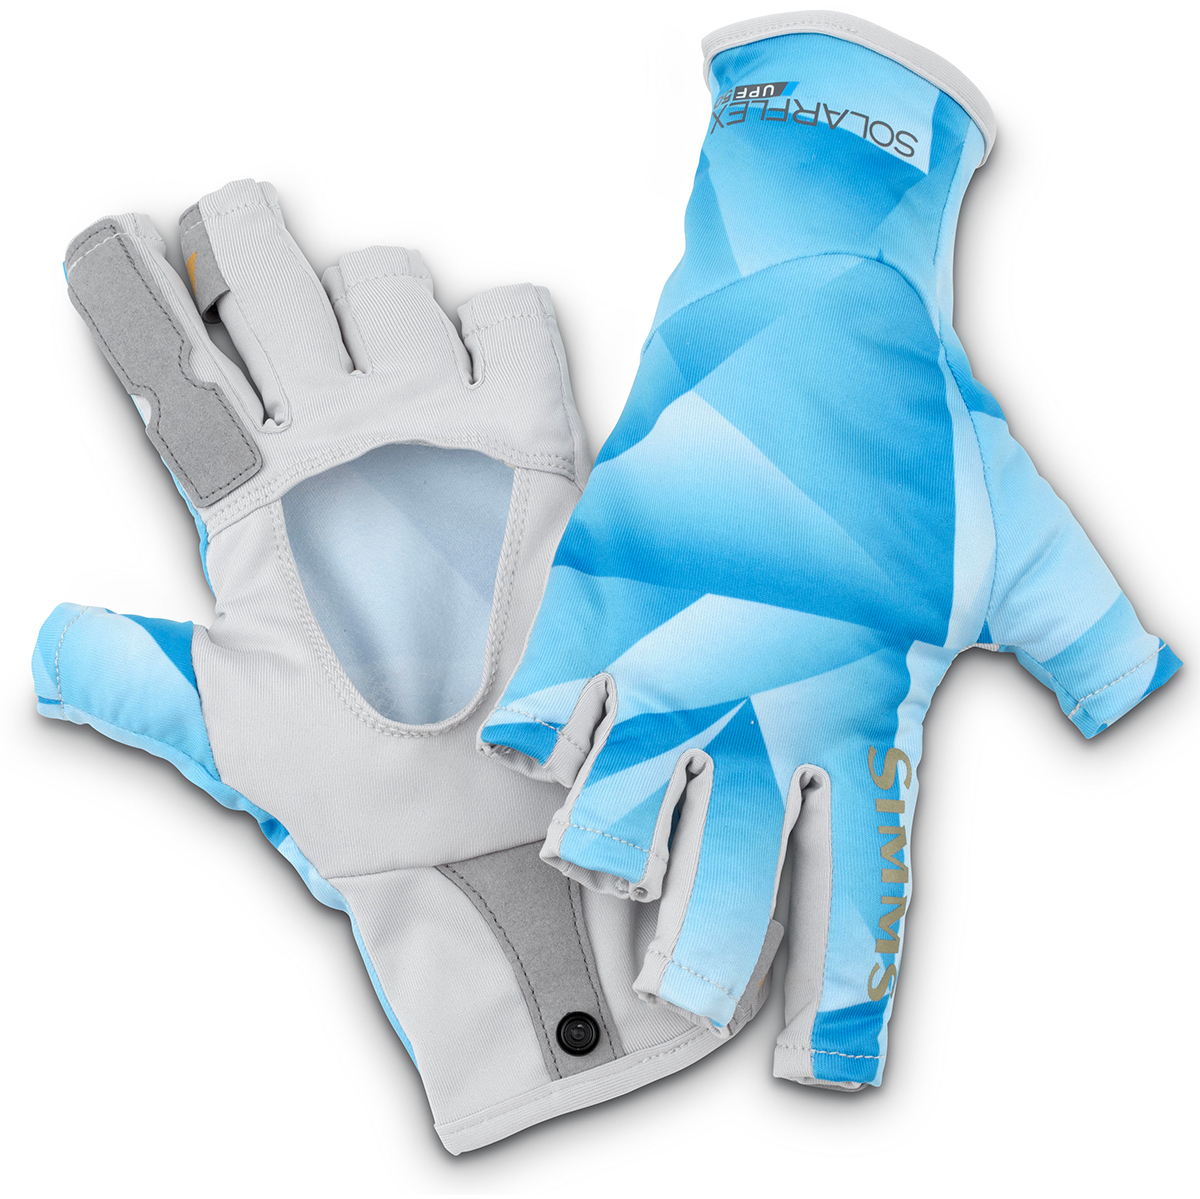 Fly fishing taimen for Fly fishing gloves